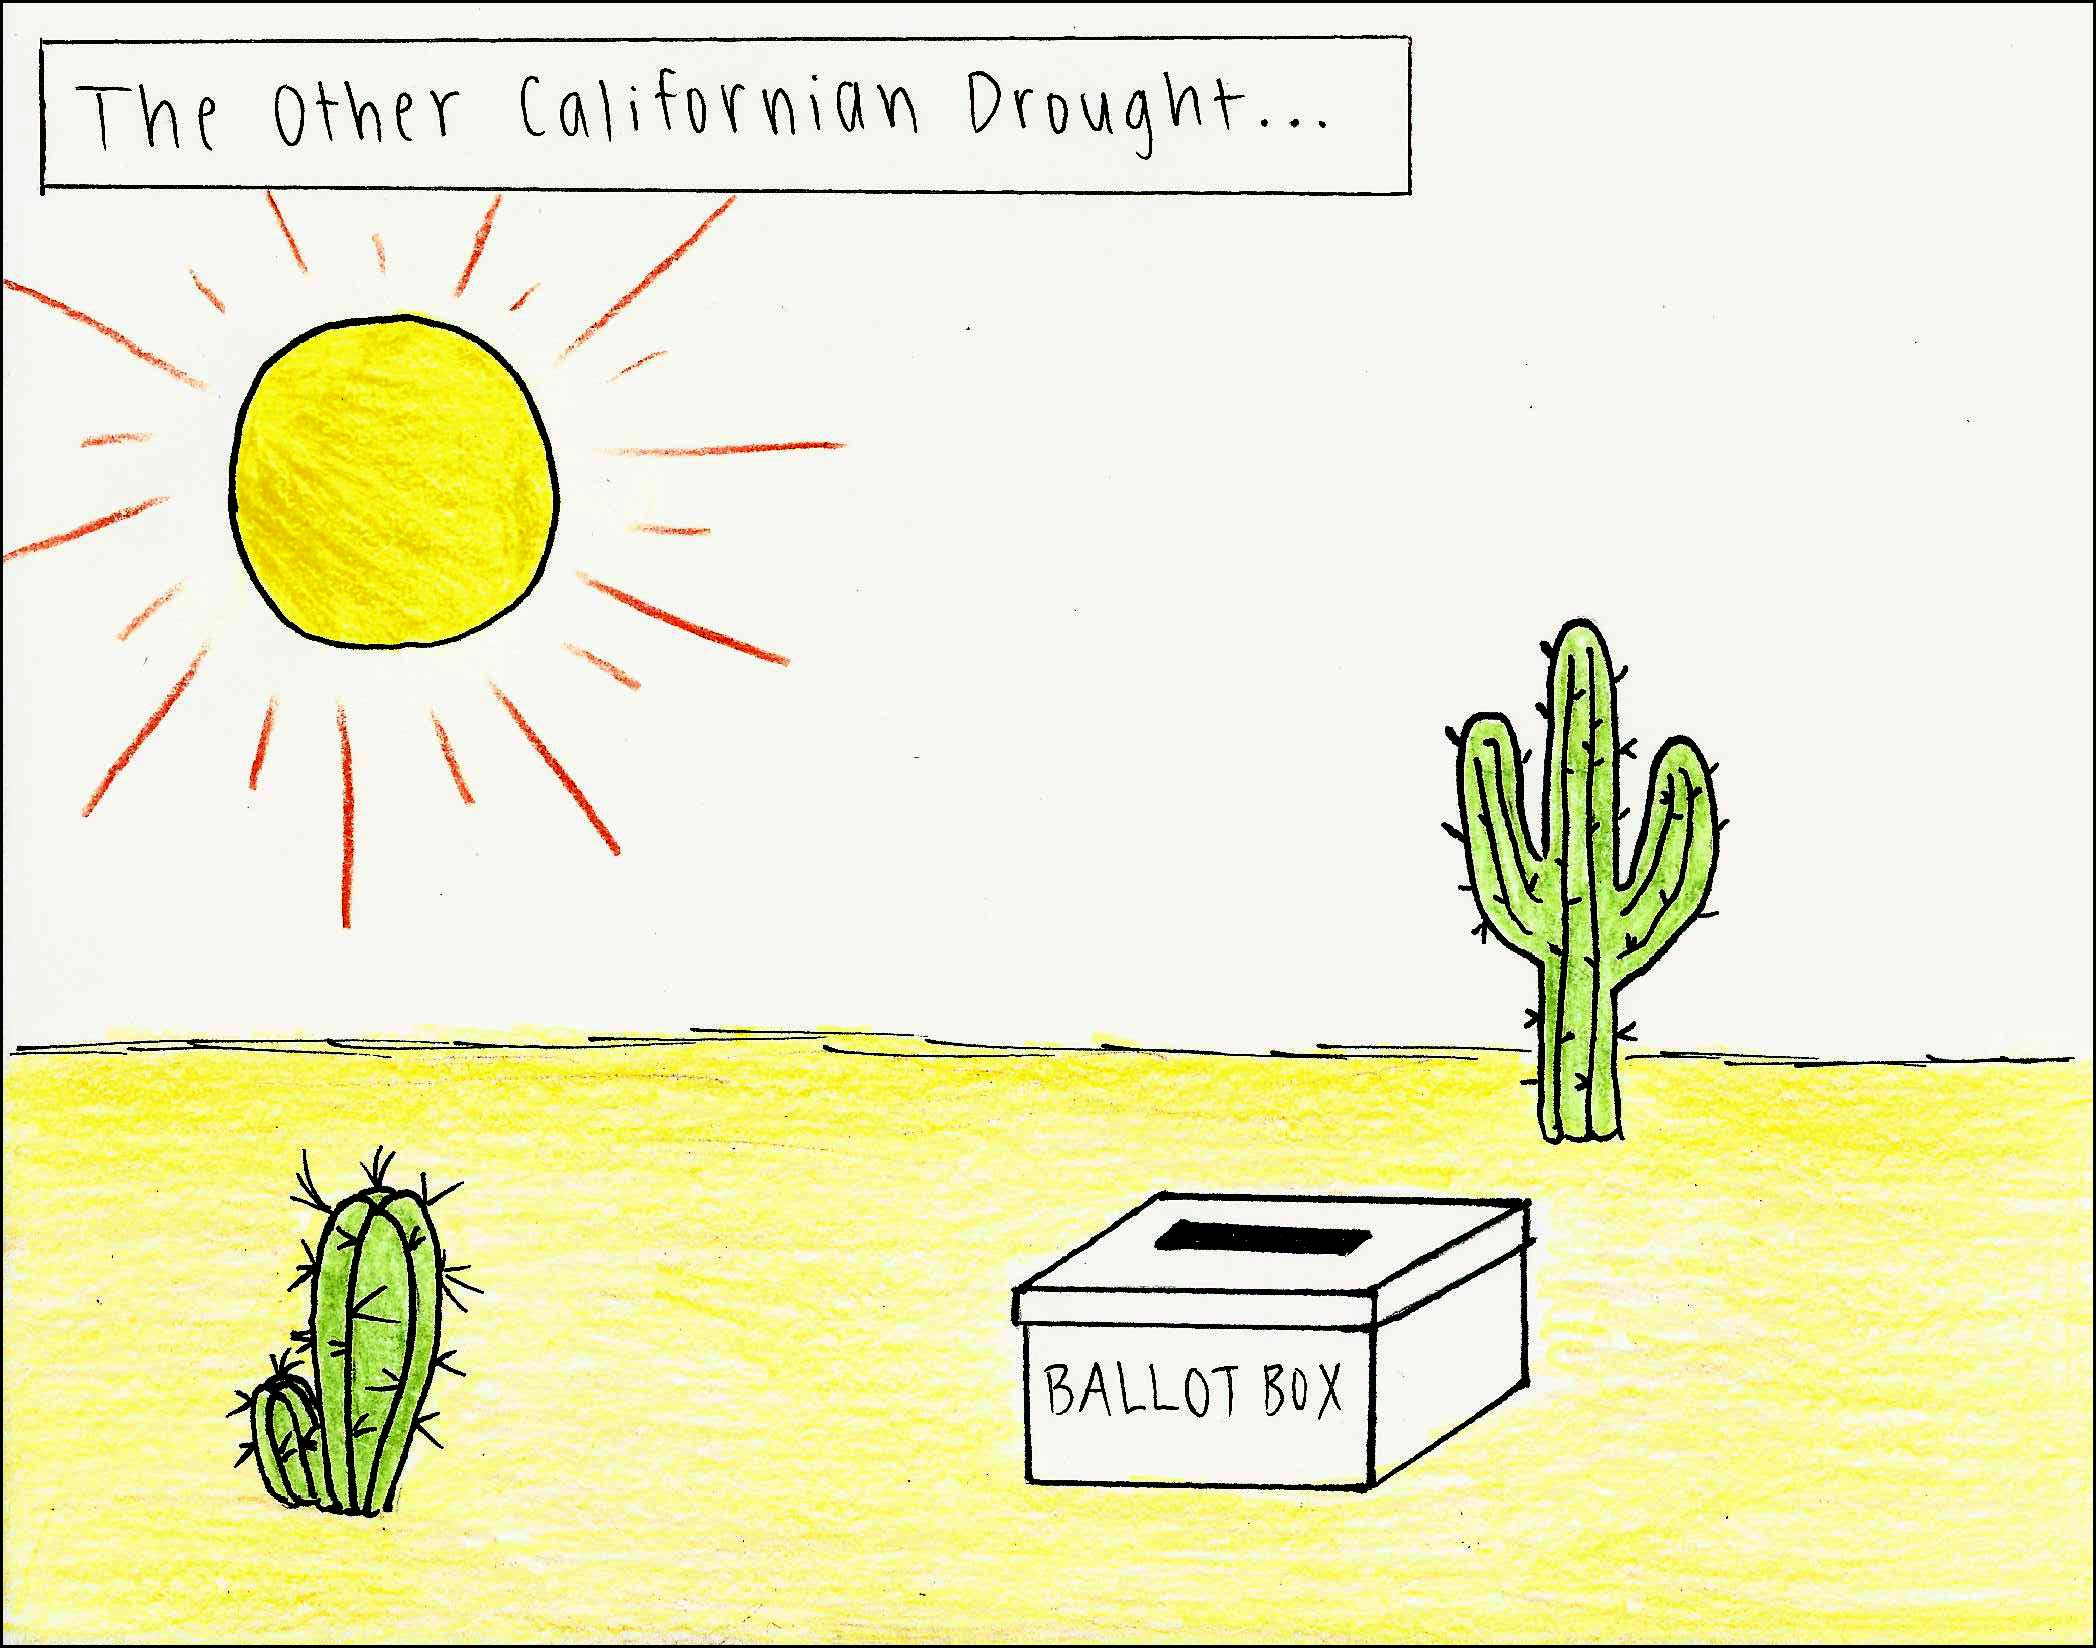 the_other_californian_drought(7)